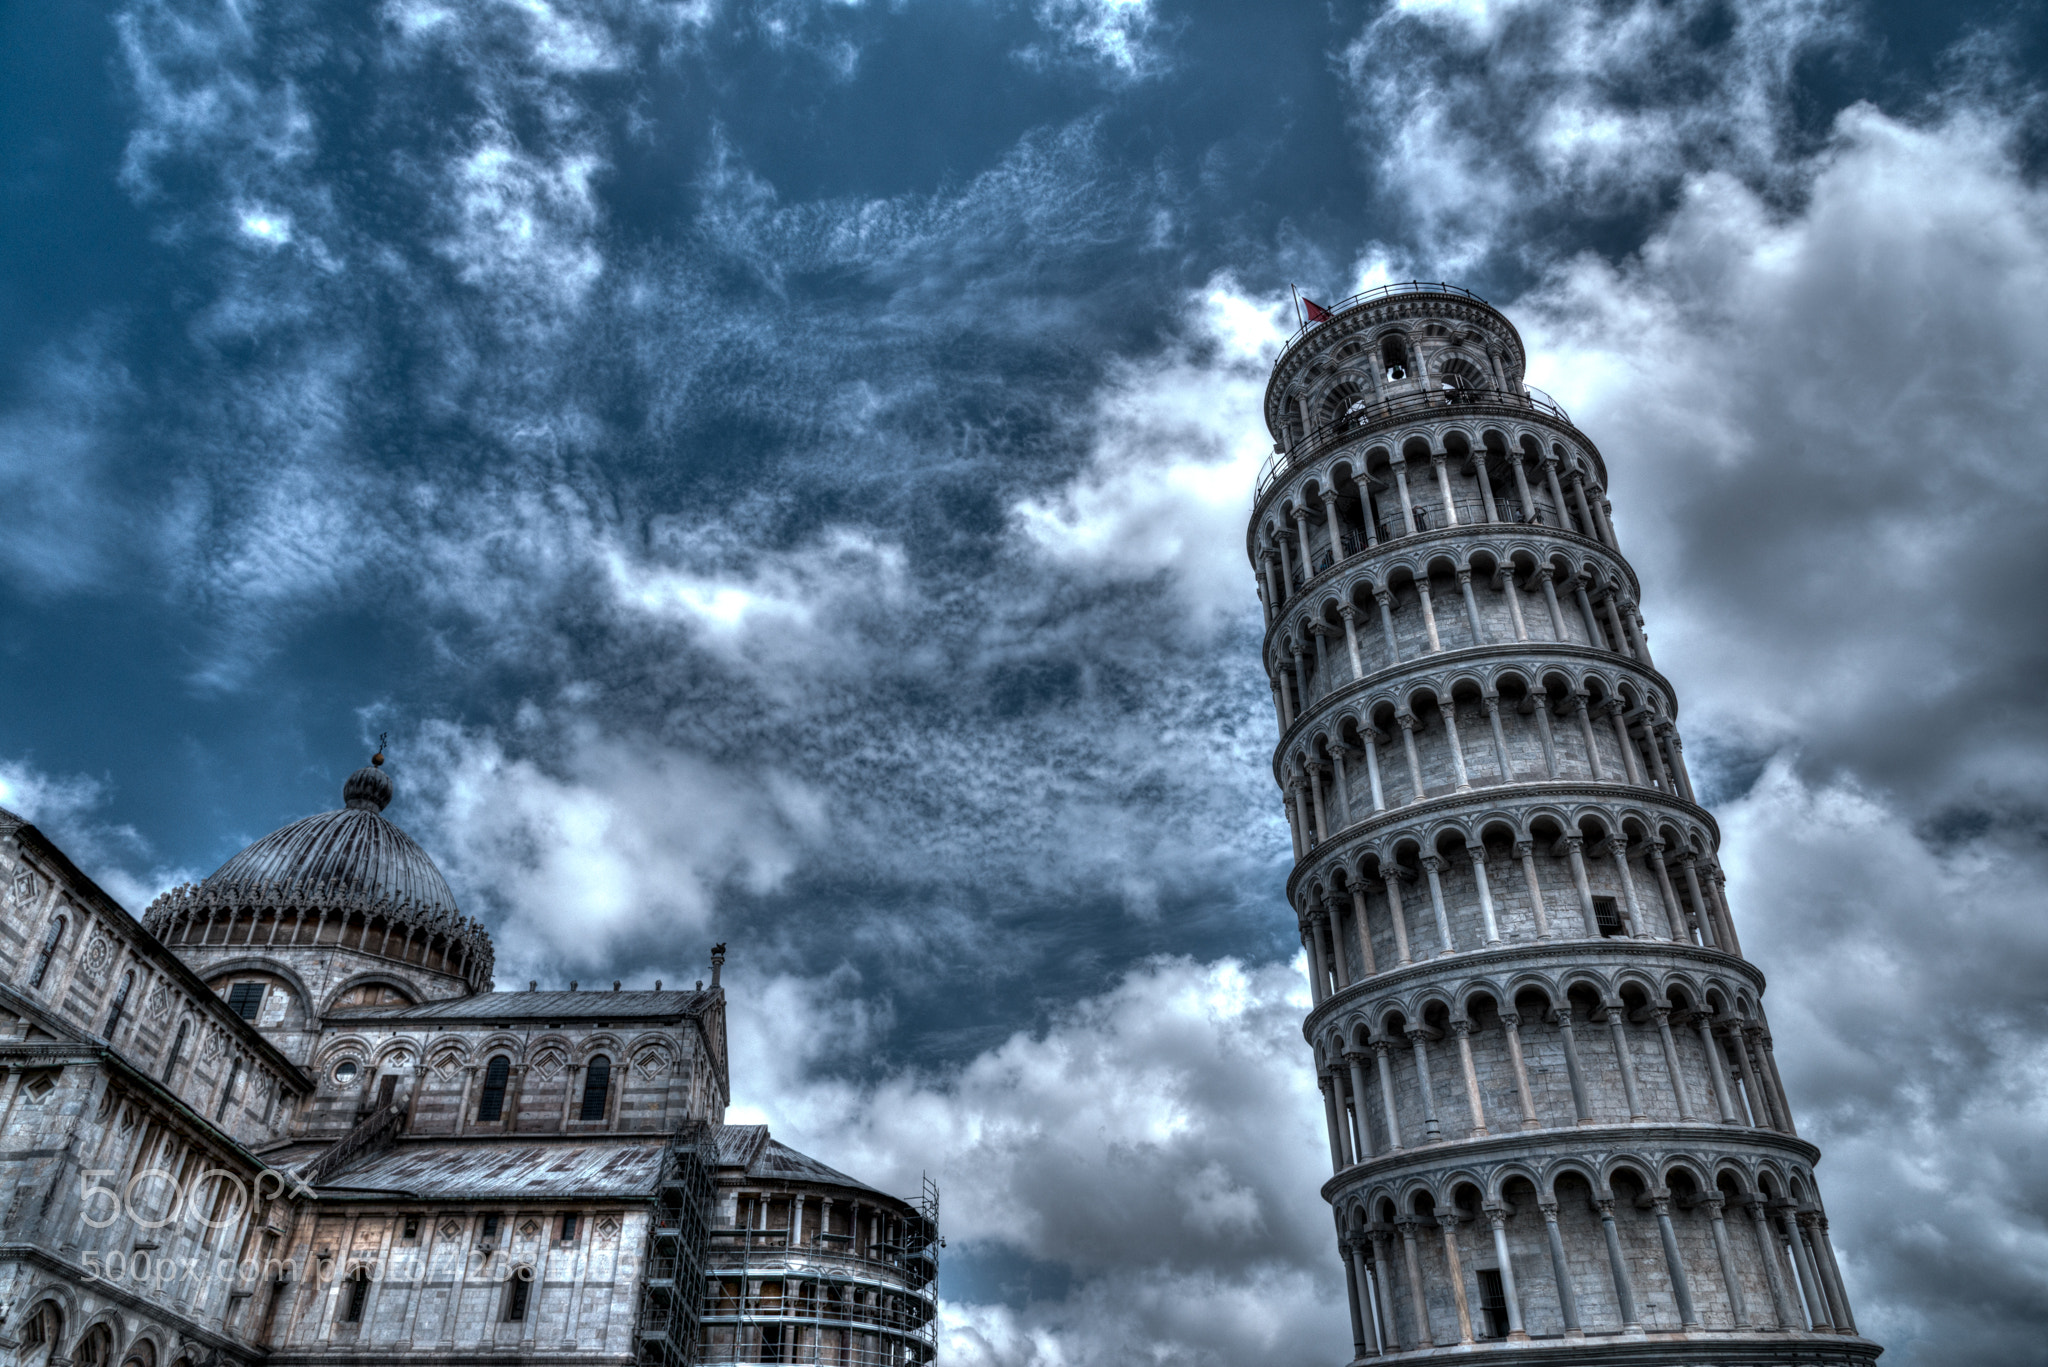 Photograph Leaning Tower by Stephen Album on 500px